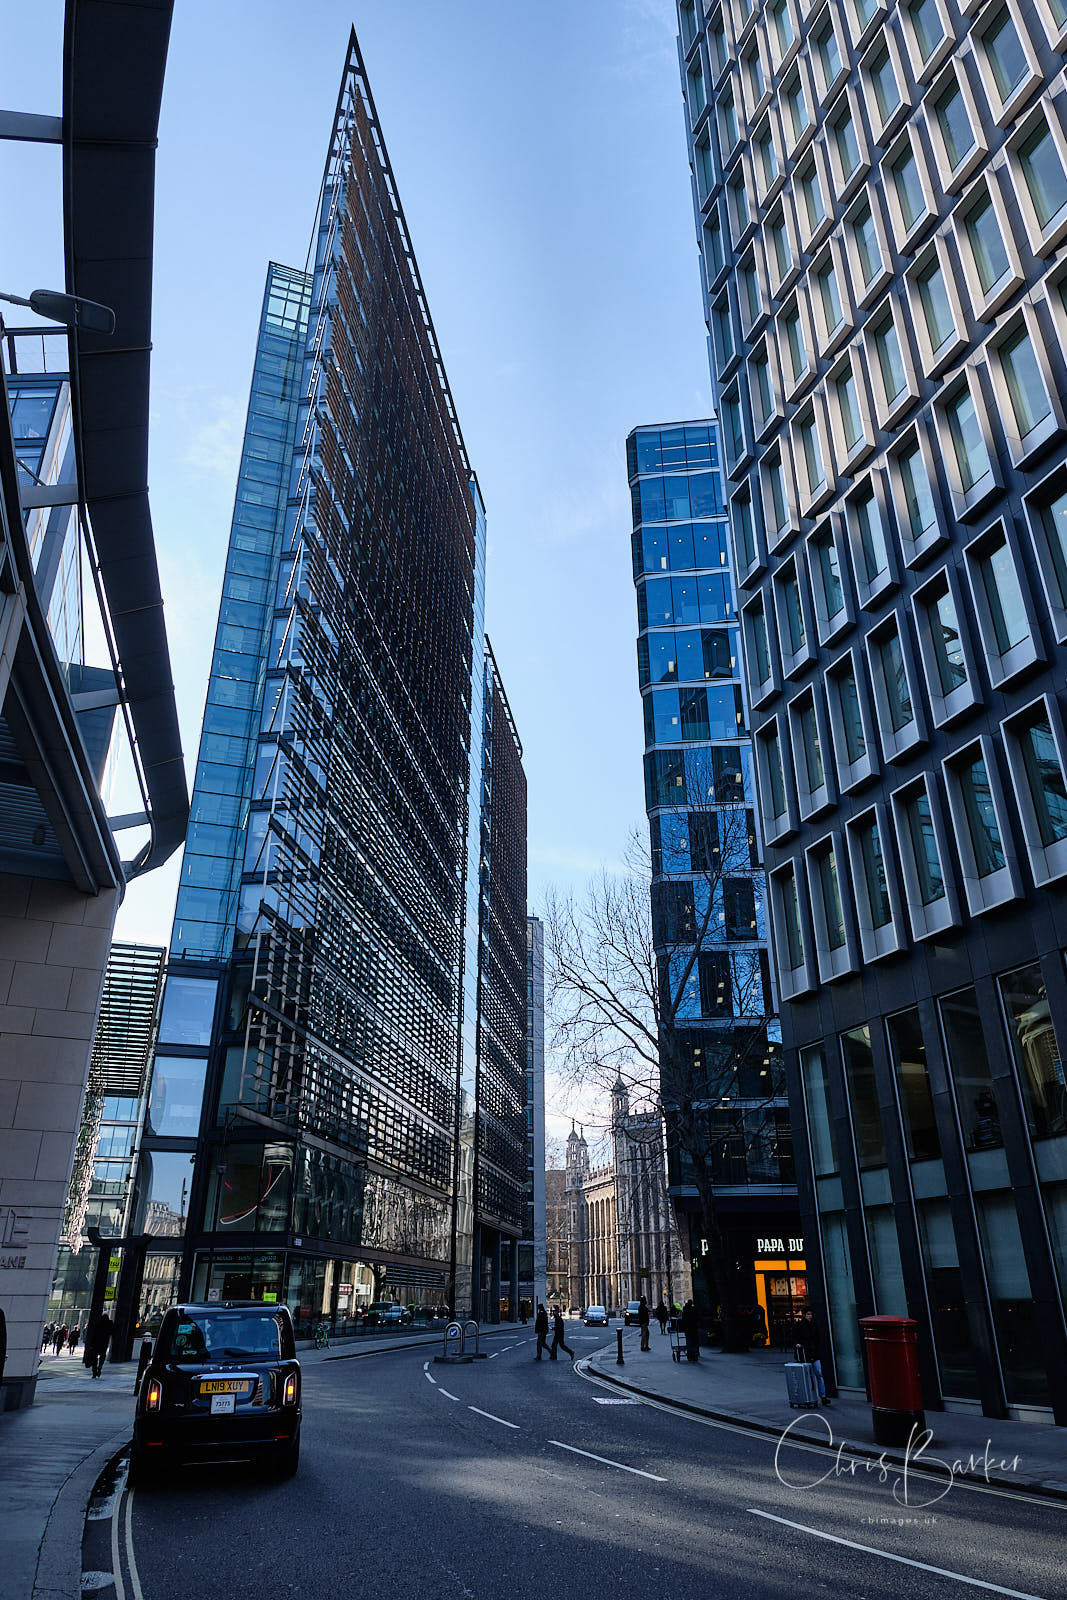 Angular buildings on New Fetter Lane in London